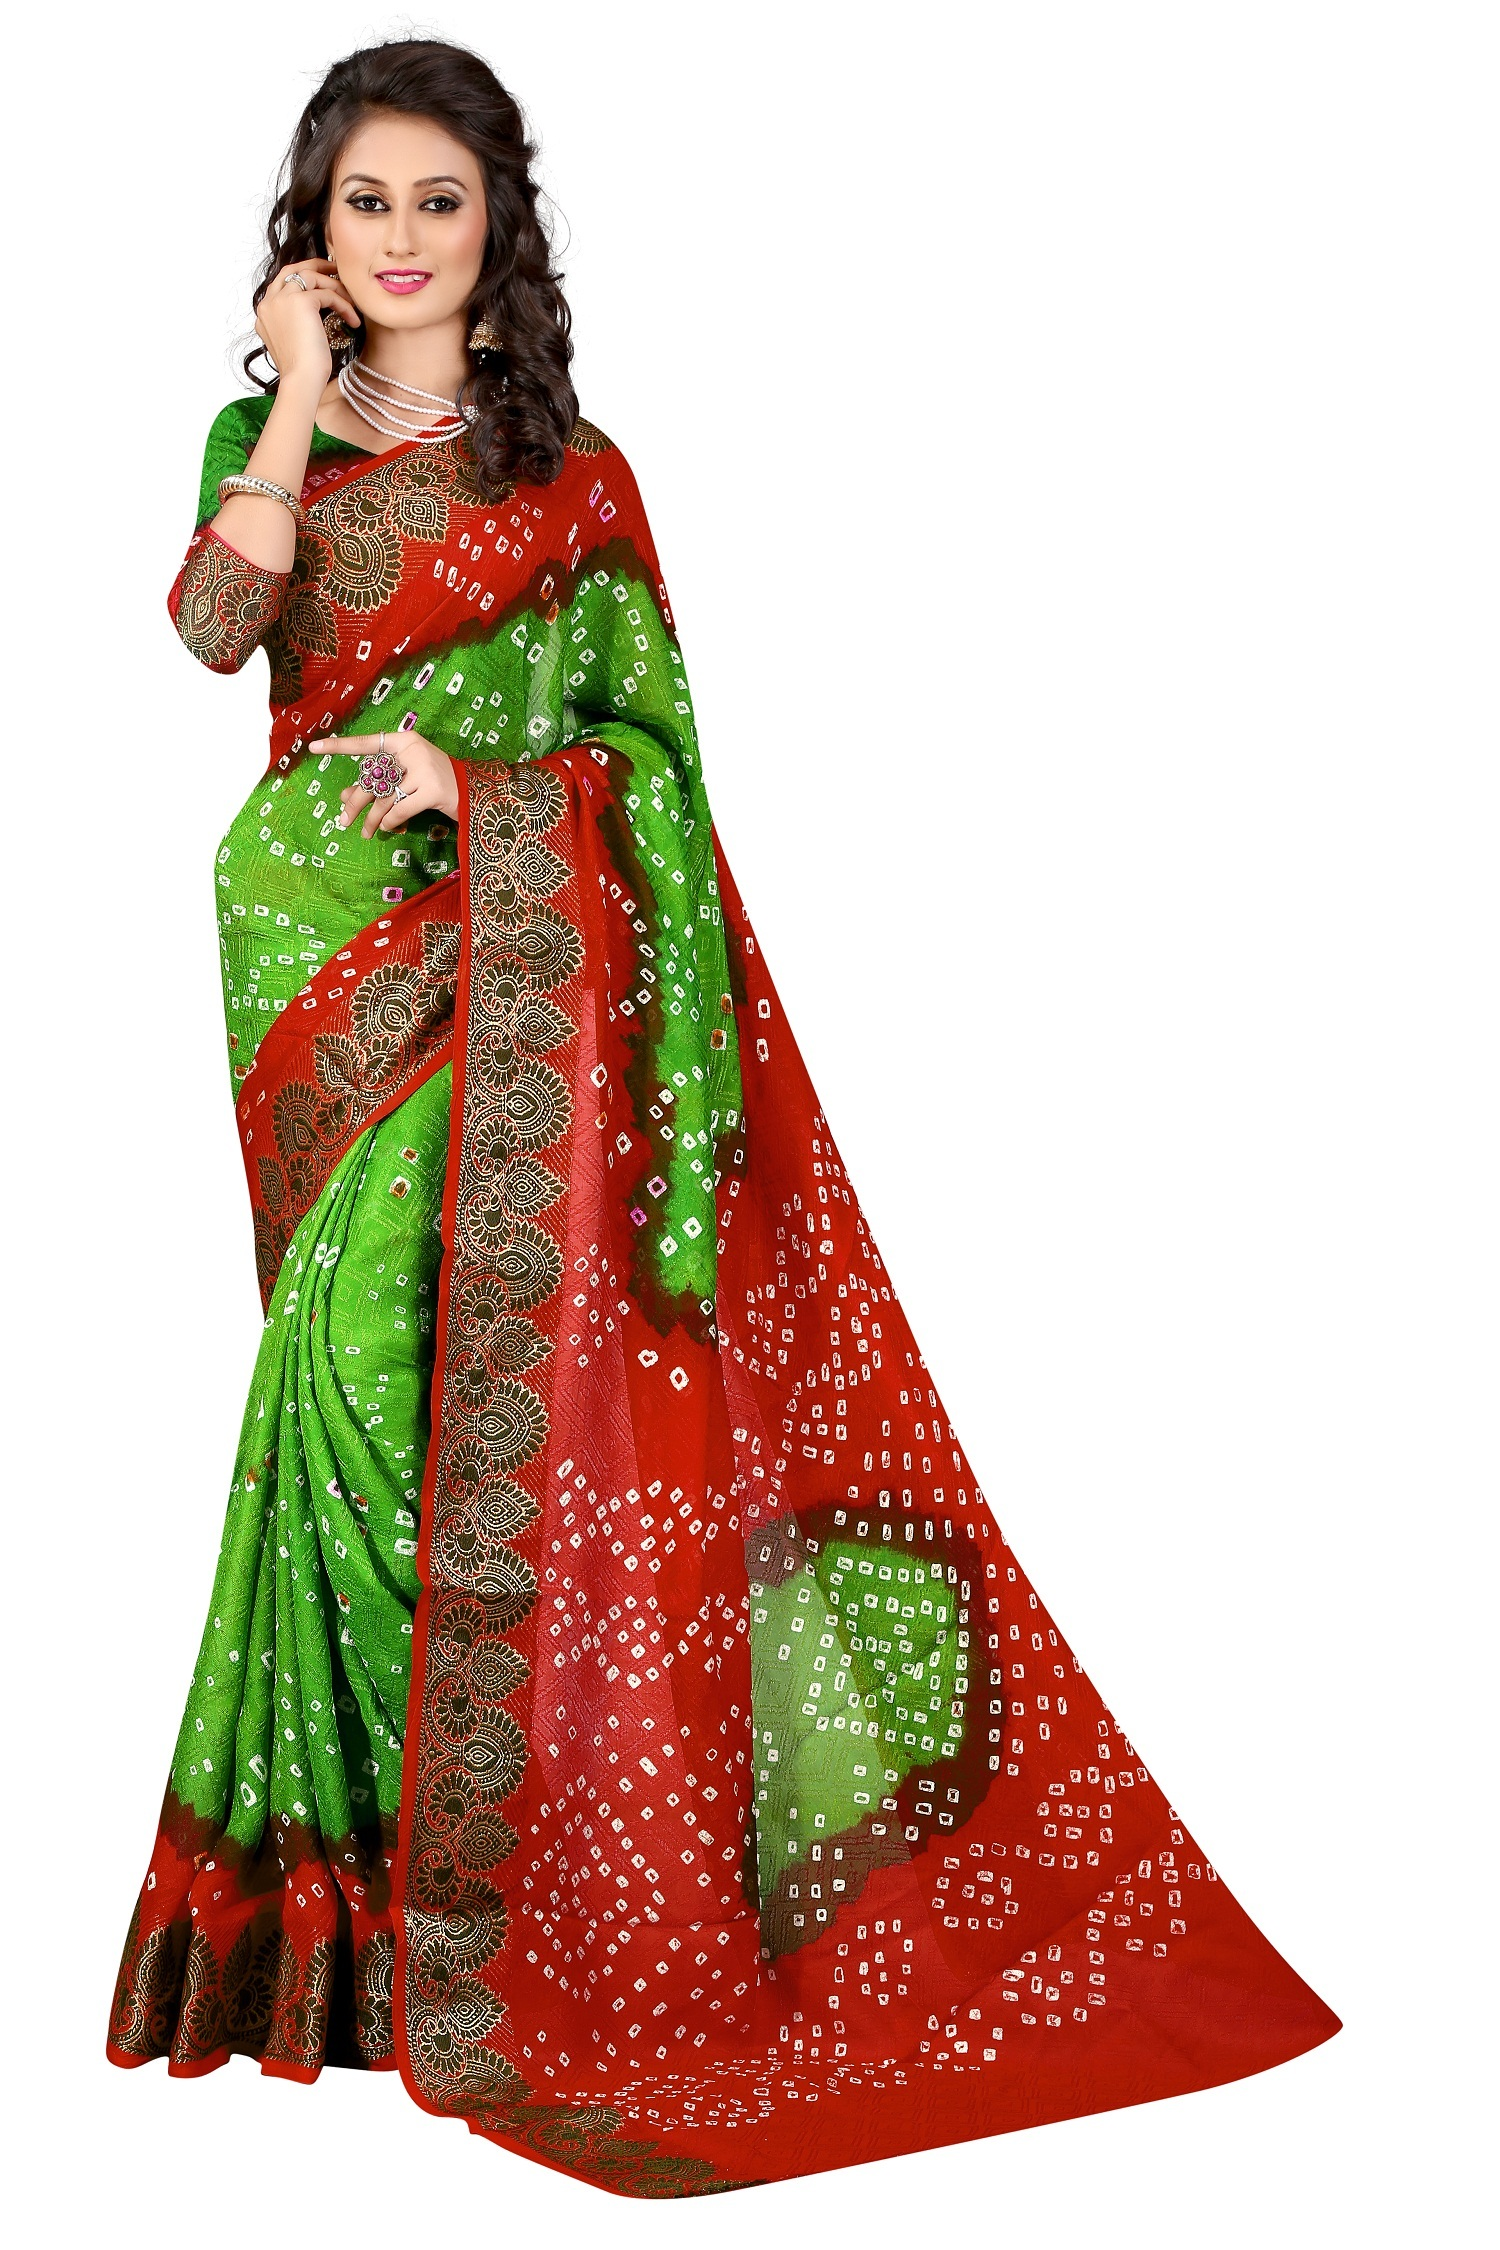 Designer Bandhani cotton Saree